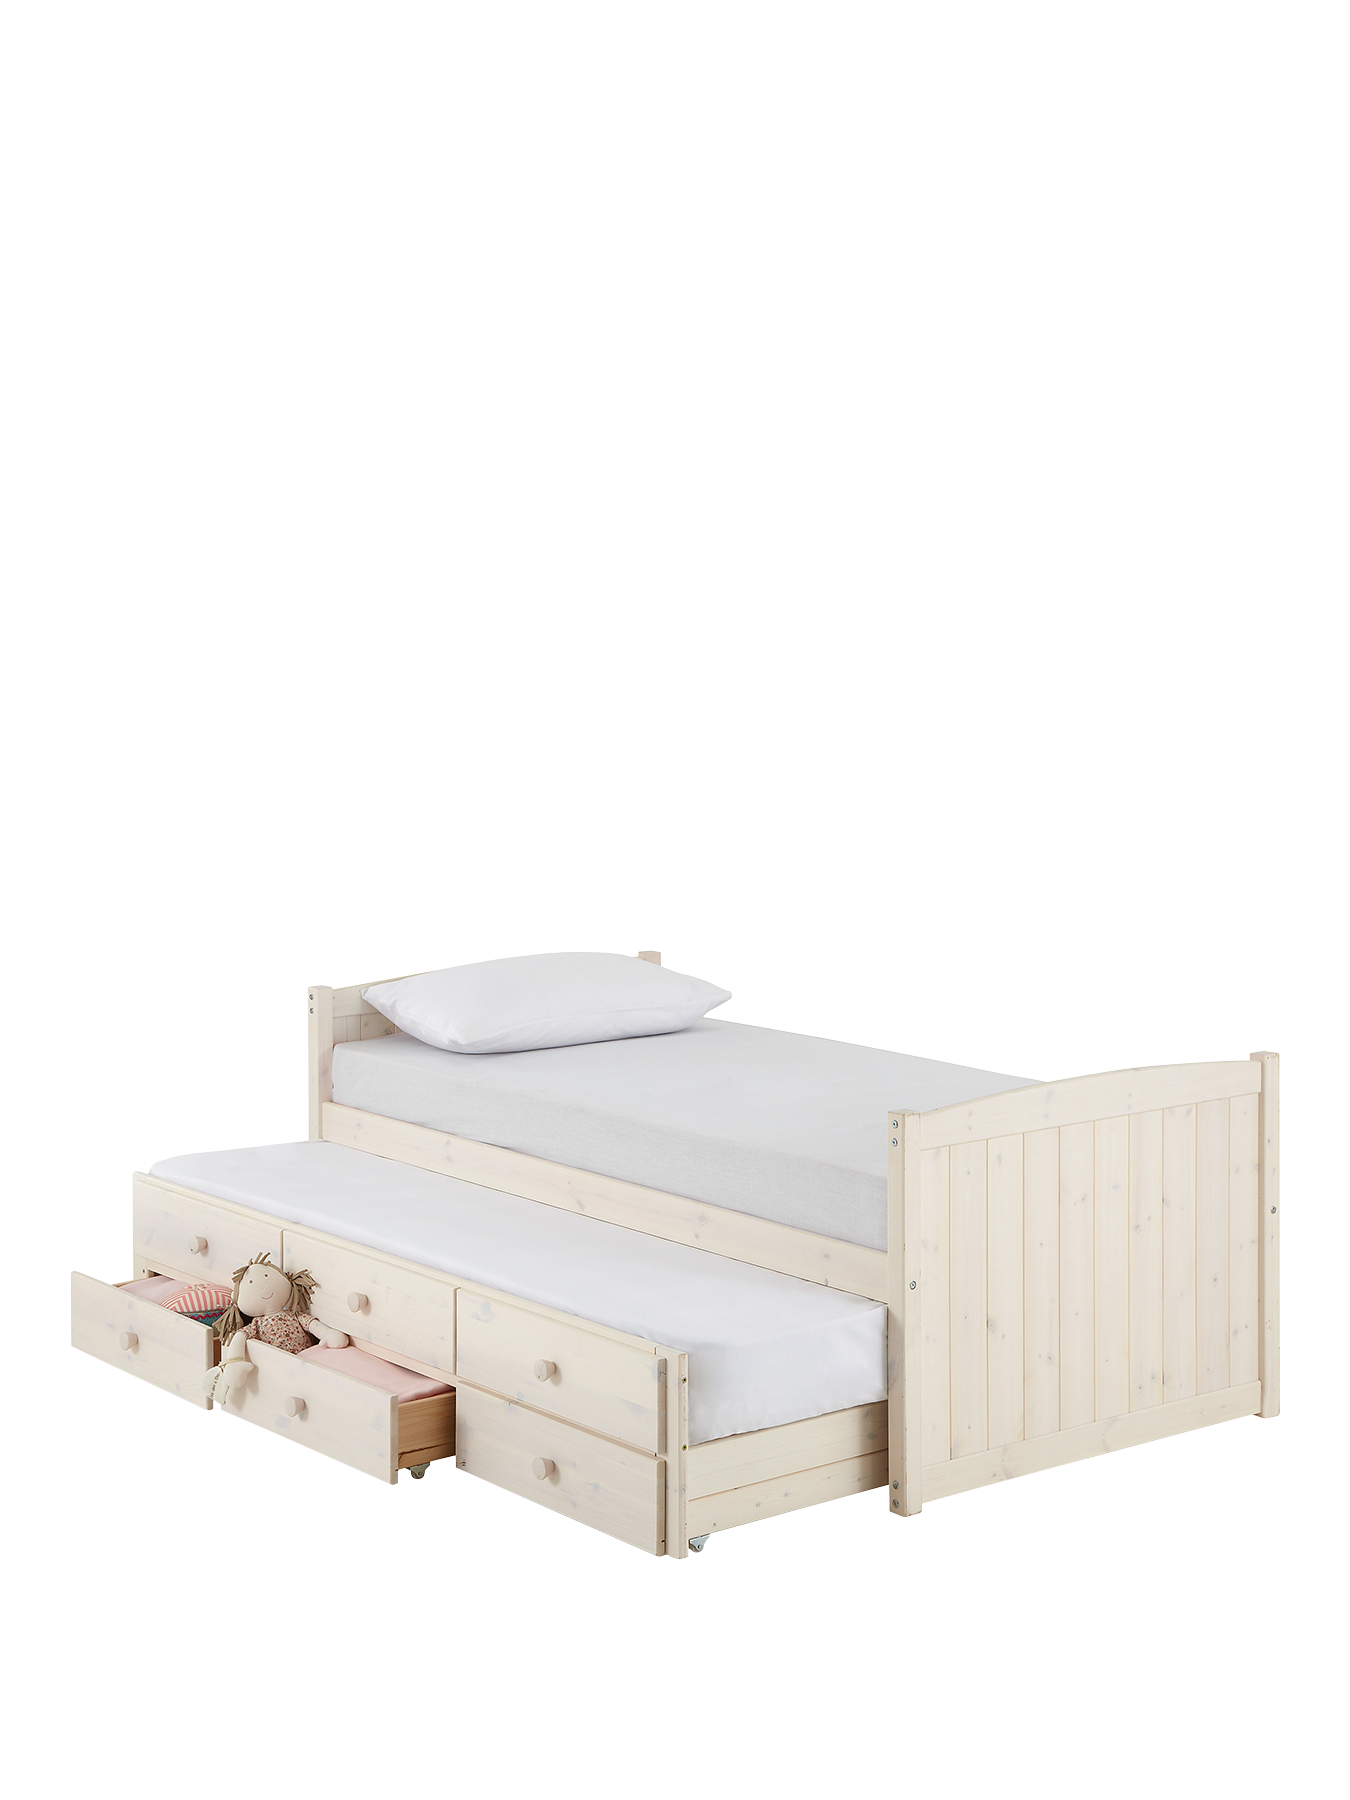 Single bed frame with drawers - Georgie Single Storage Bed With Pull Out Guest Bed